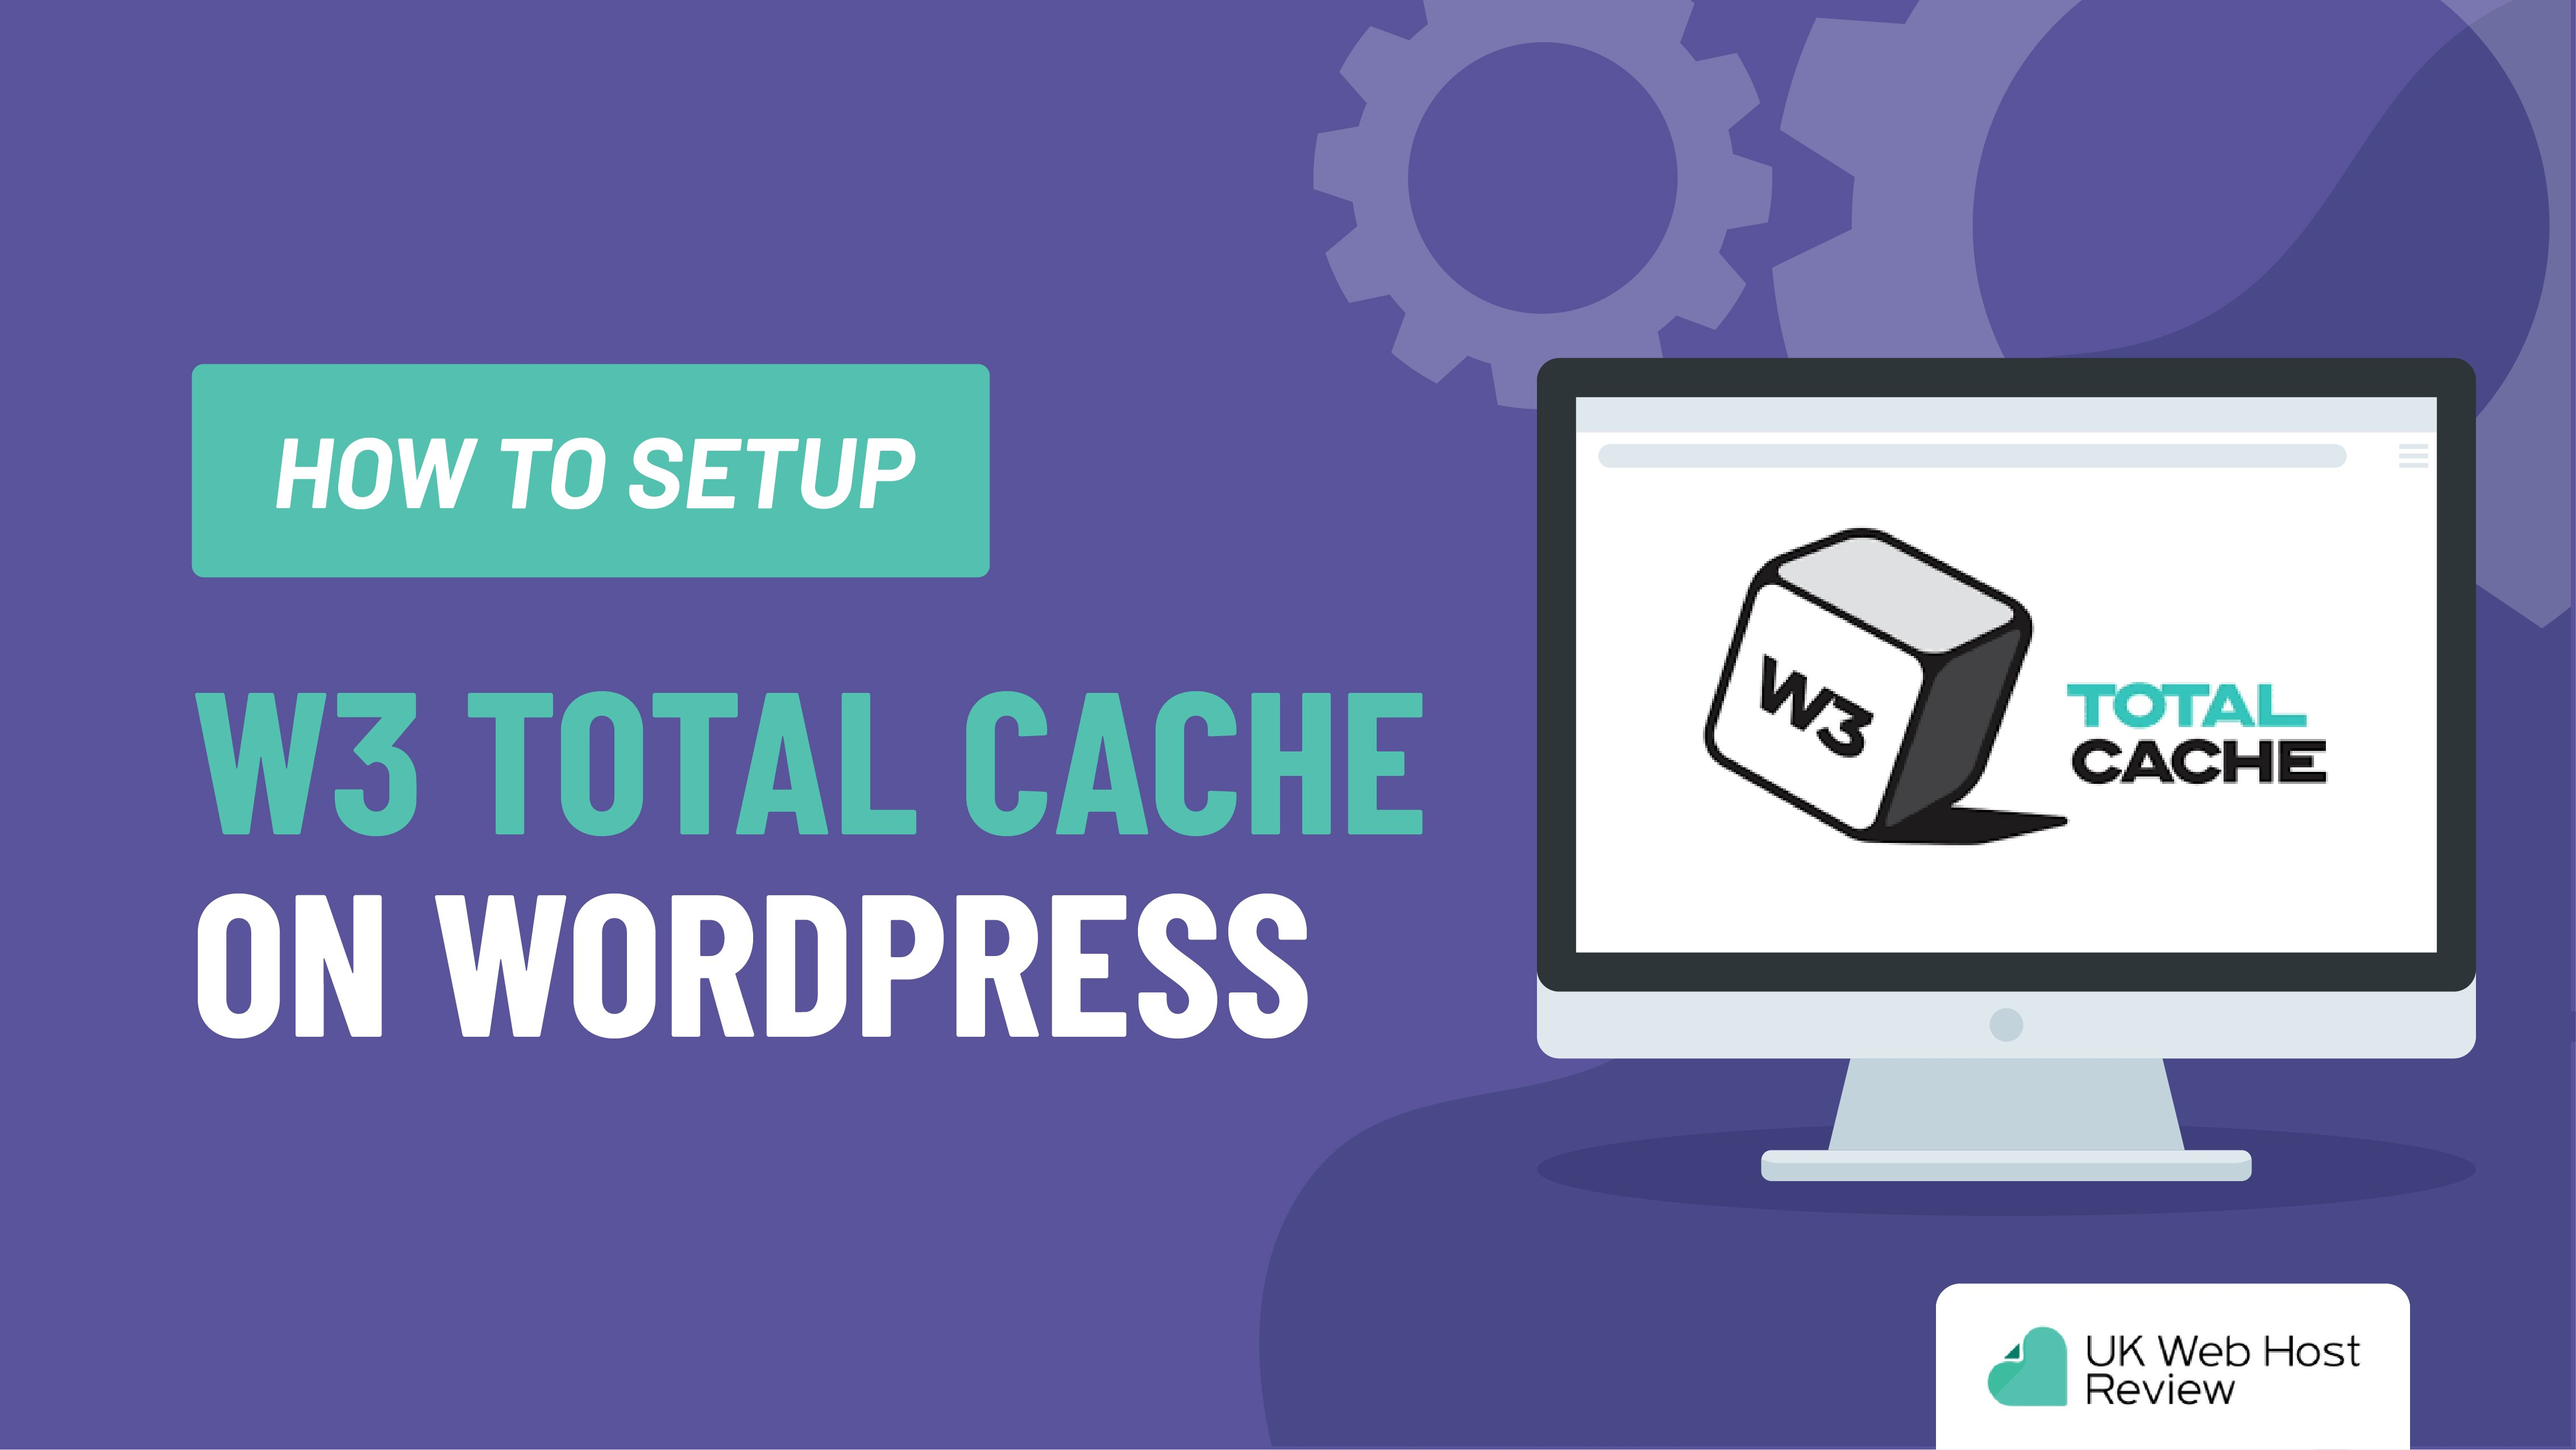 How to Setup W3 Total Cache on WordPress